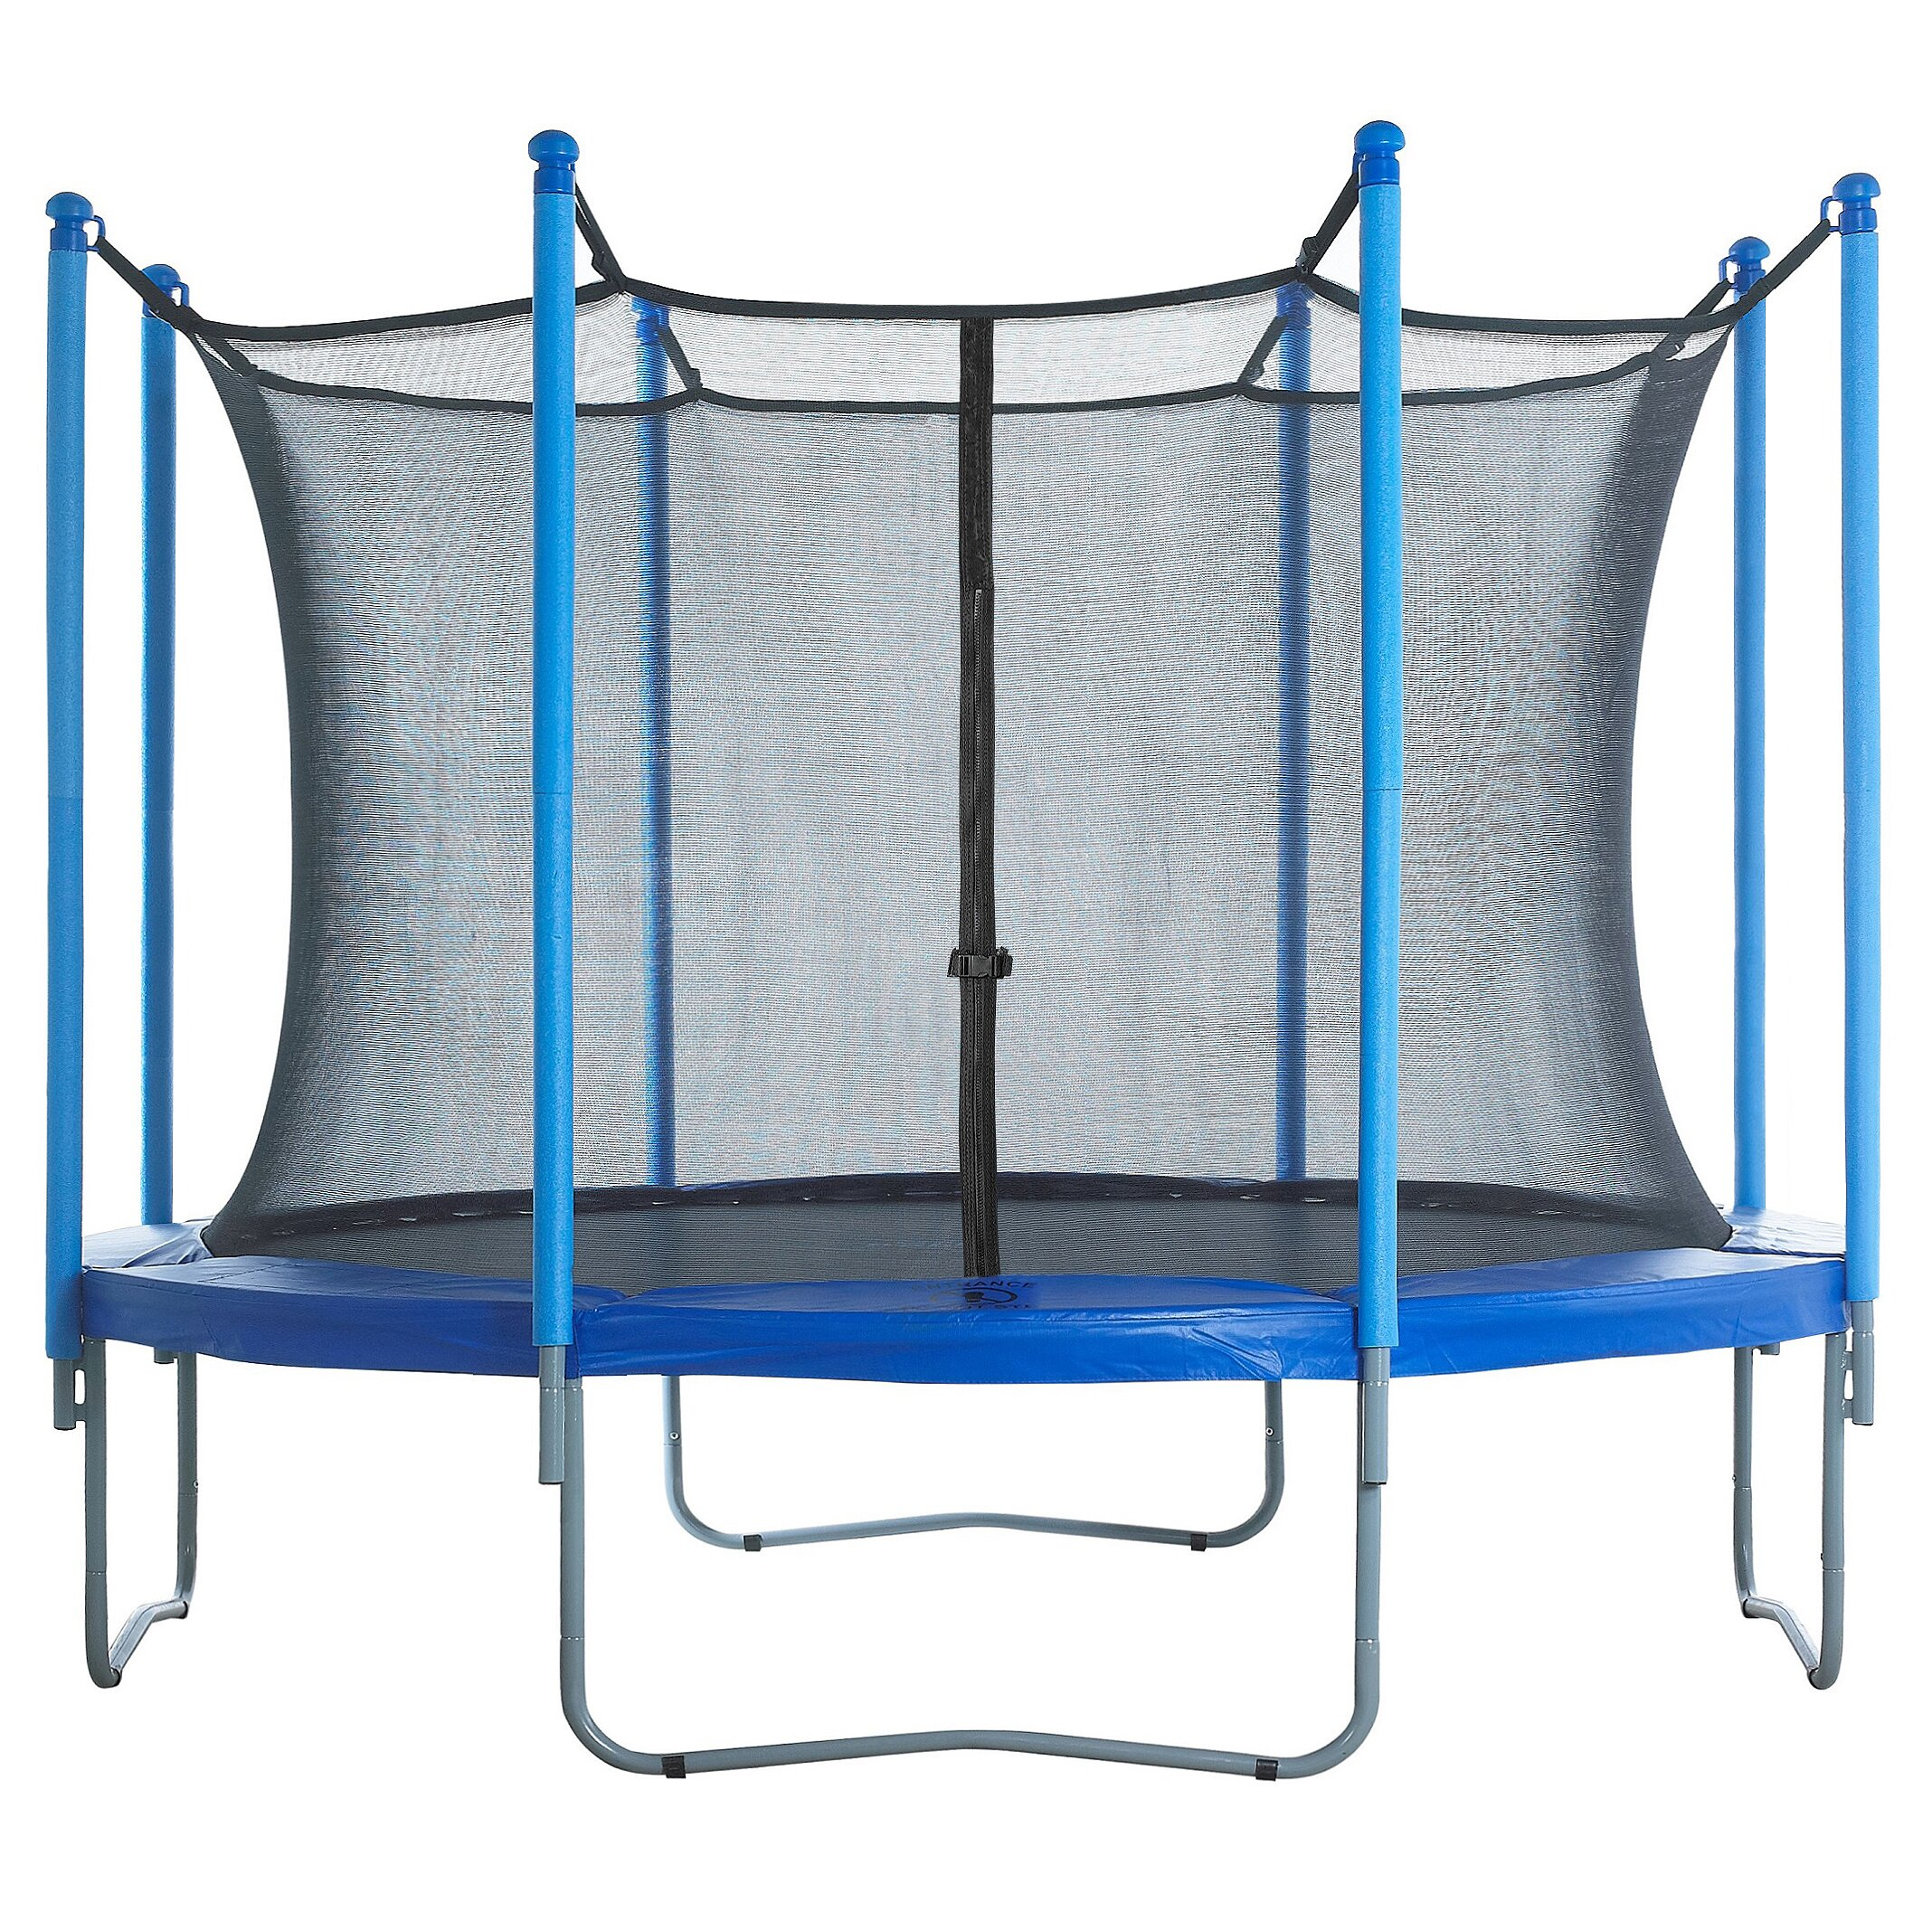 Upper Bounce 15' Round Trampoline Net Using 8 Poles Or 4